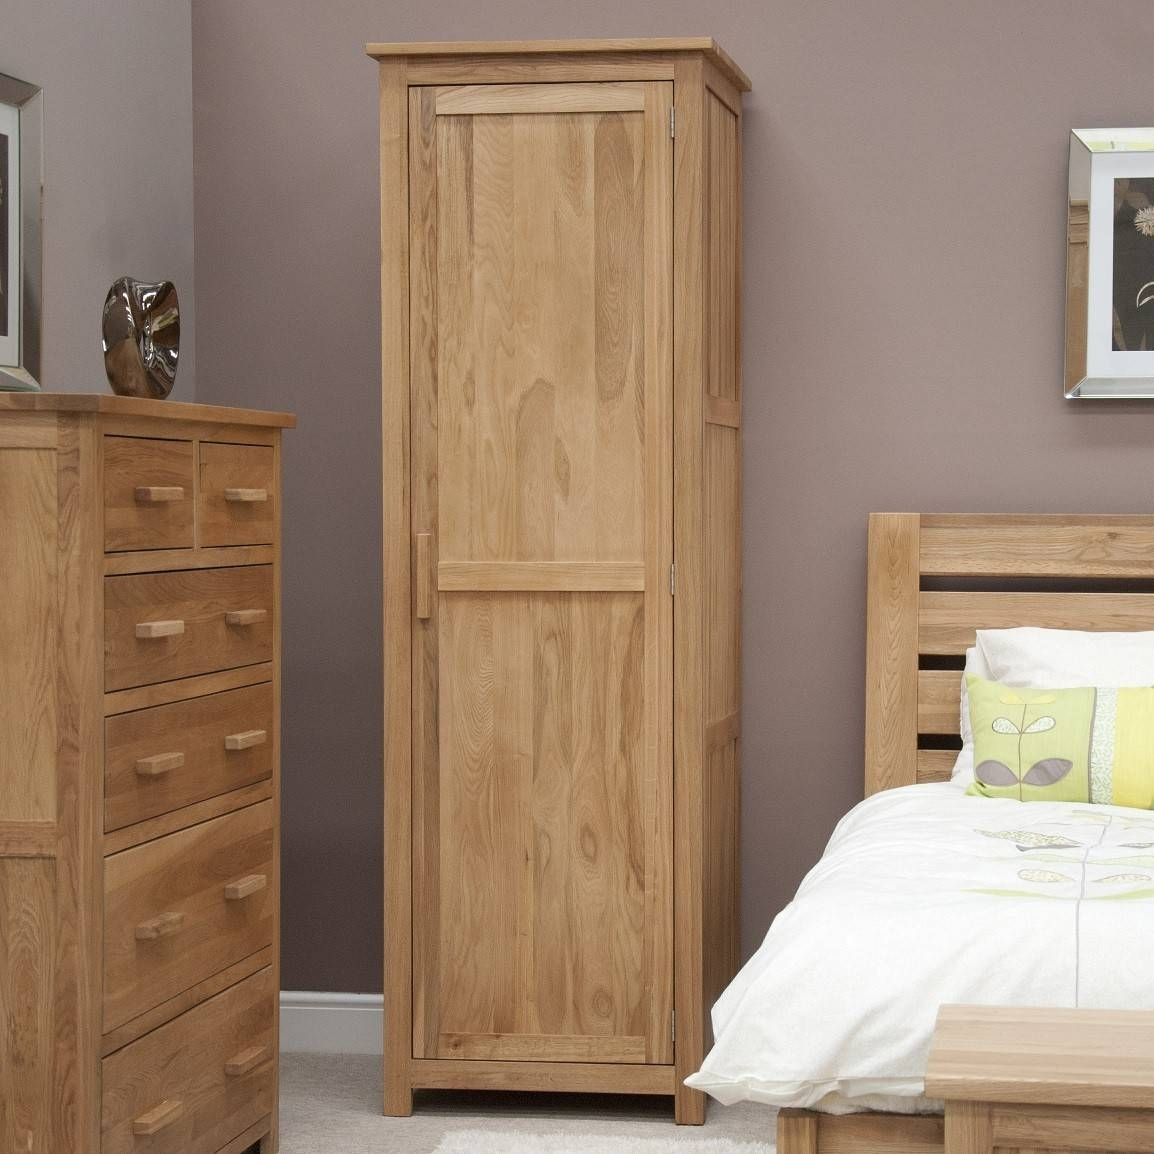 Opus Solid Oak 1 Door Single Wardrobe | Oak Furniture Uk with regard to Small Single Wardrobes (Image 7 of 15)